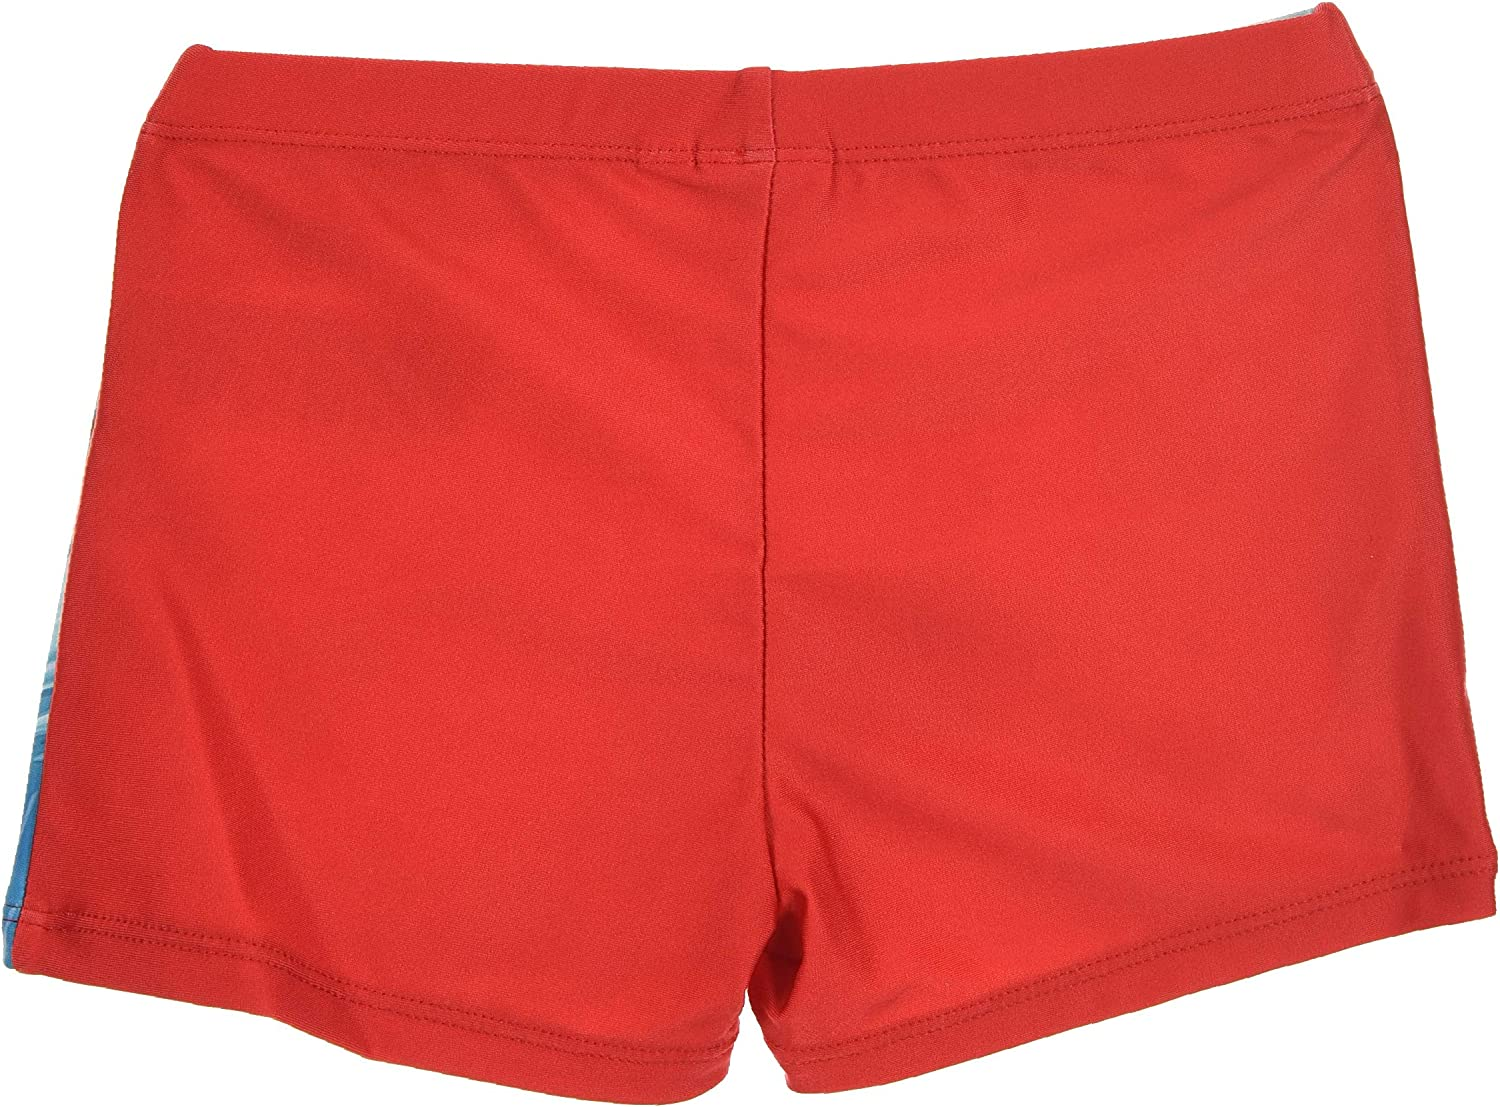 Mickey Mouse Jungen Badehose